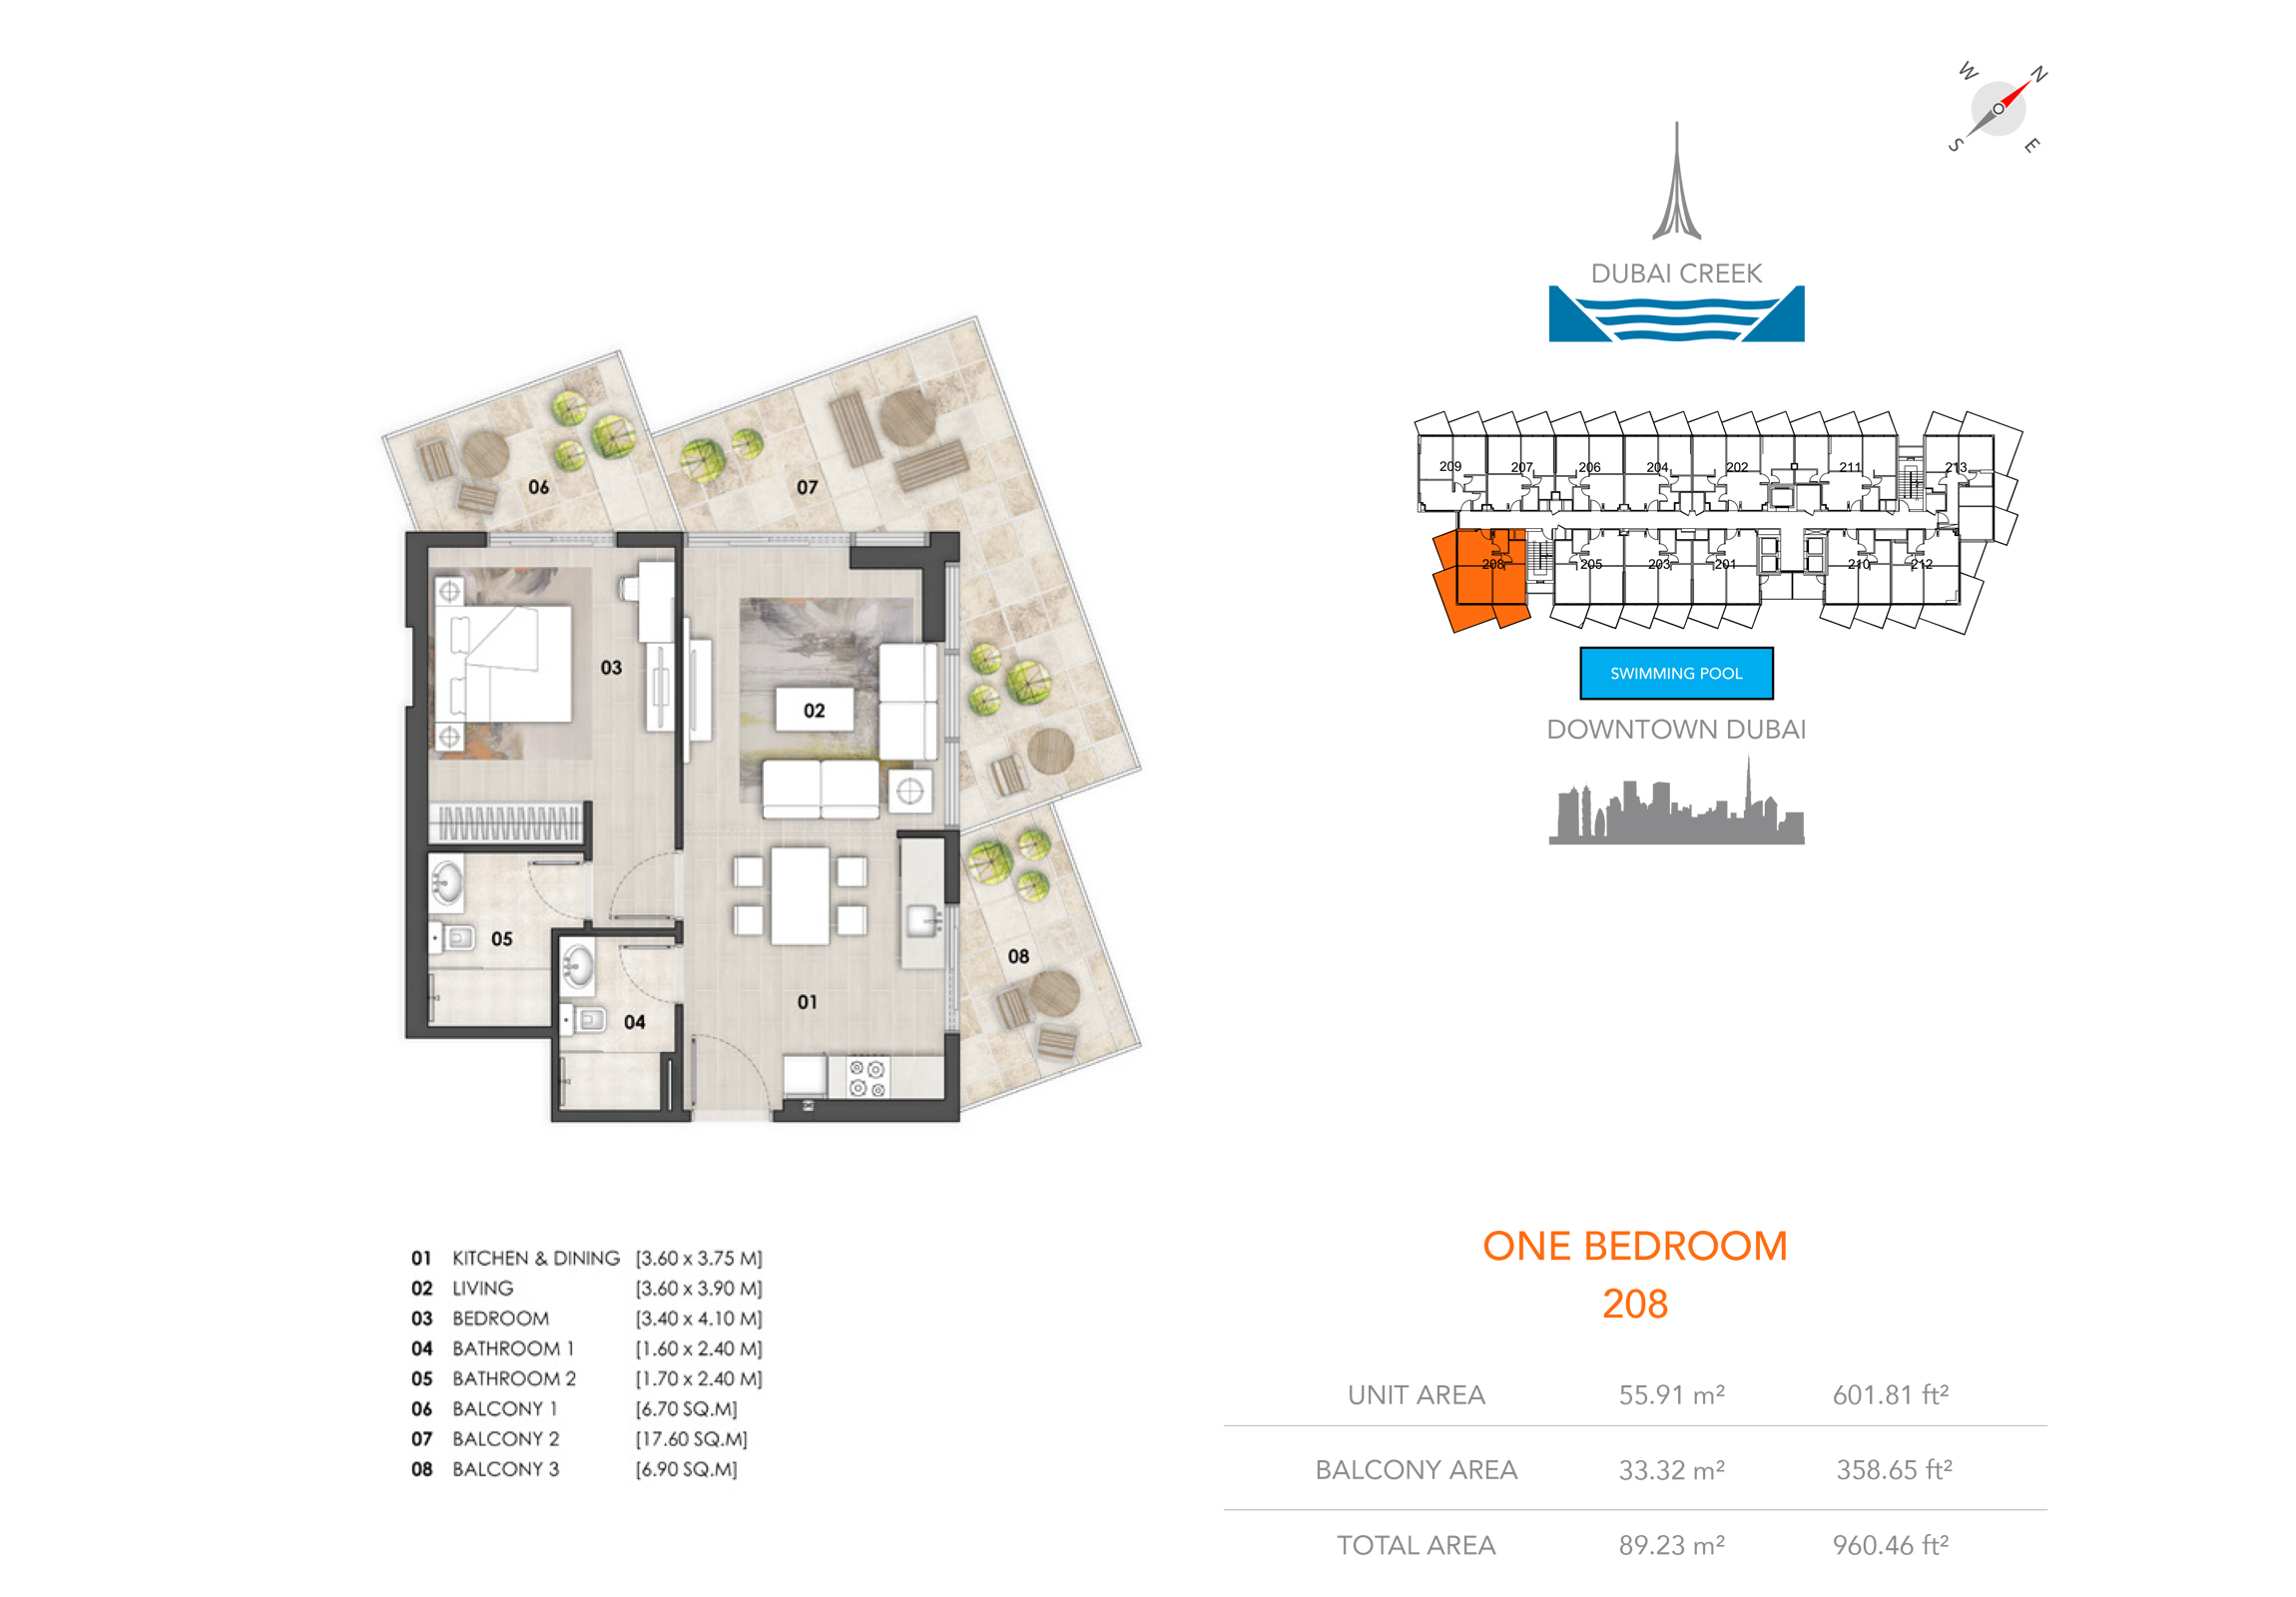 1 Bedroom 808, Size 960.46 sq.ft